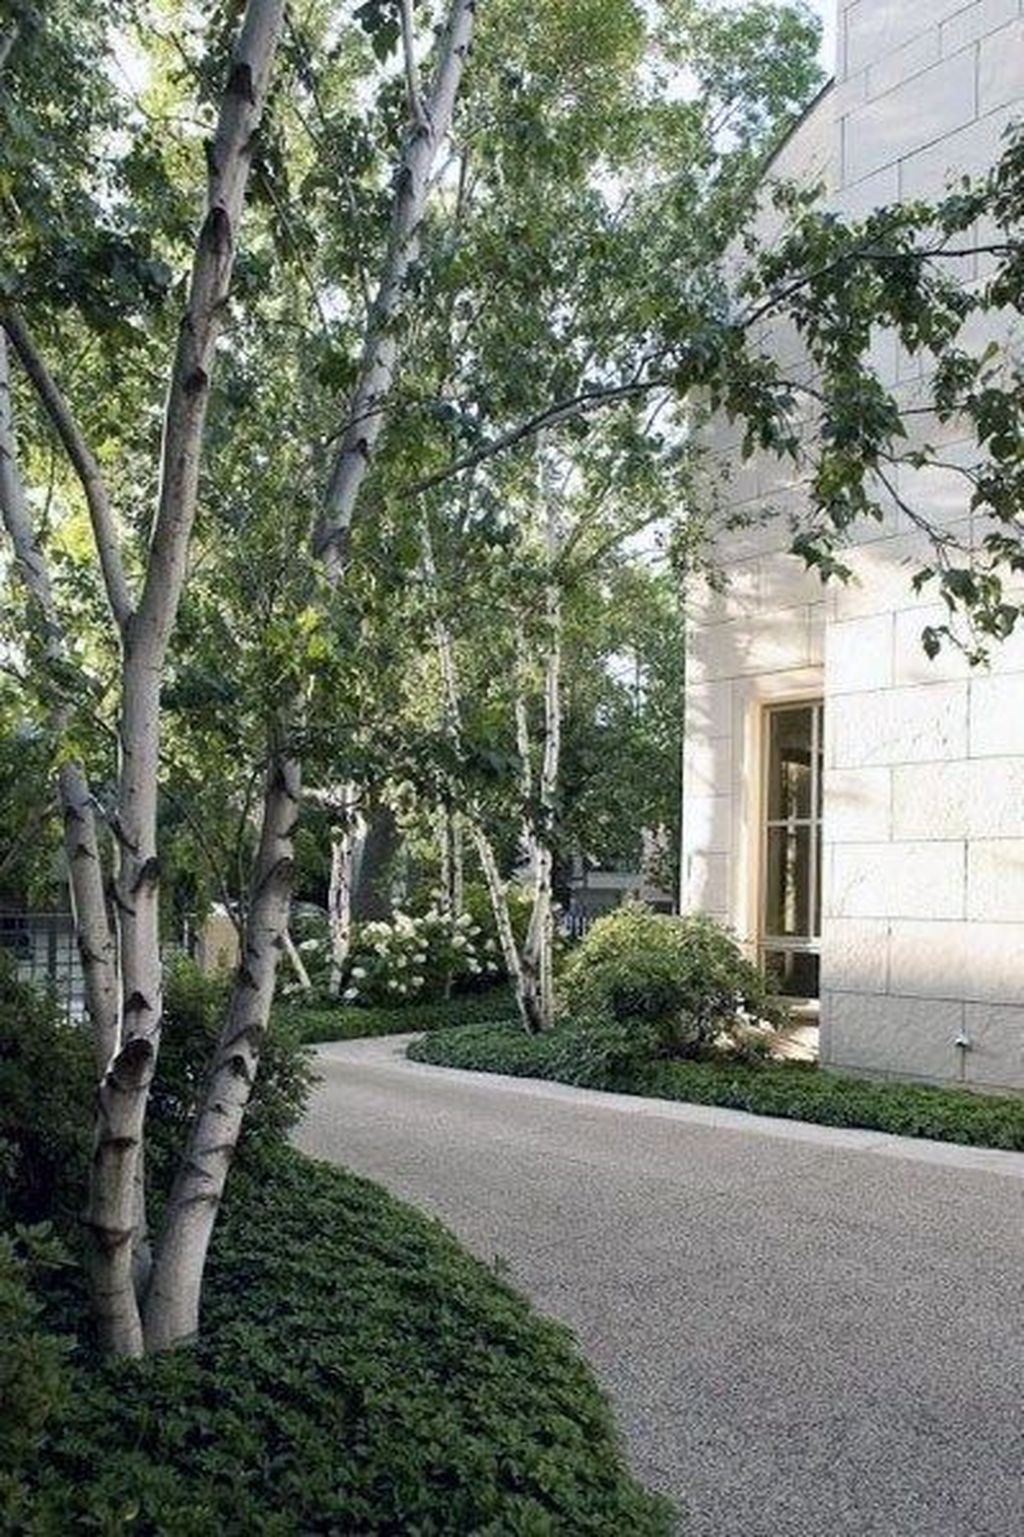 Fabulous Driveway Landscaping Design Ideas For Your Home To Try Asap 21